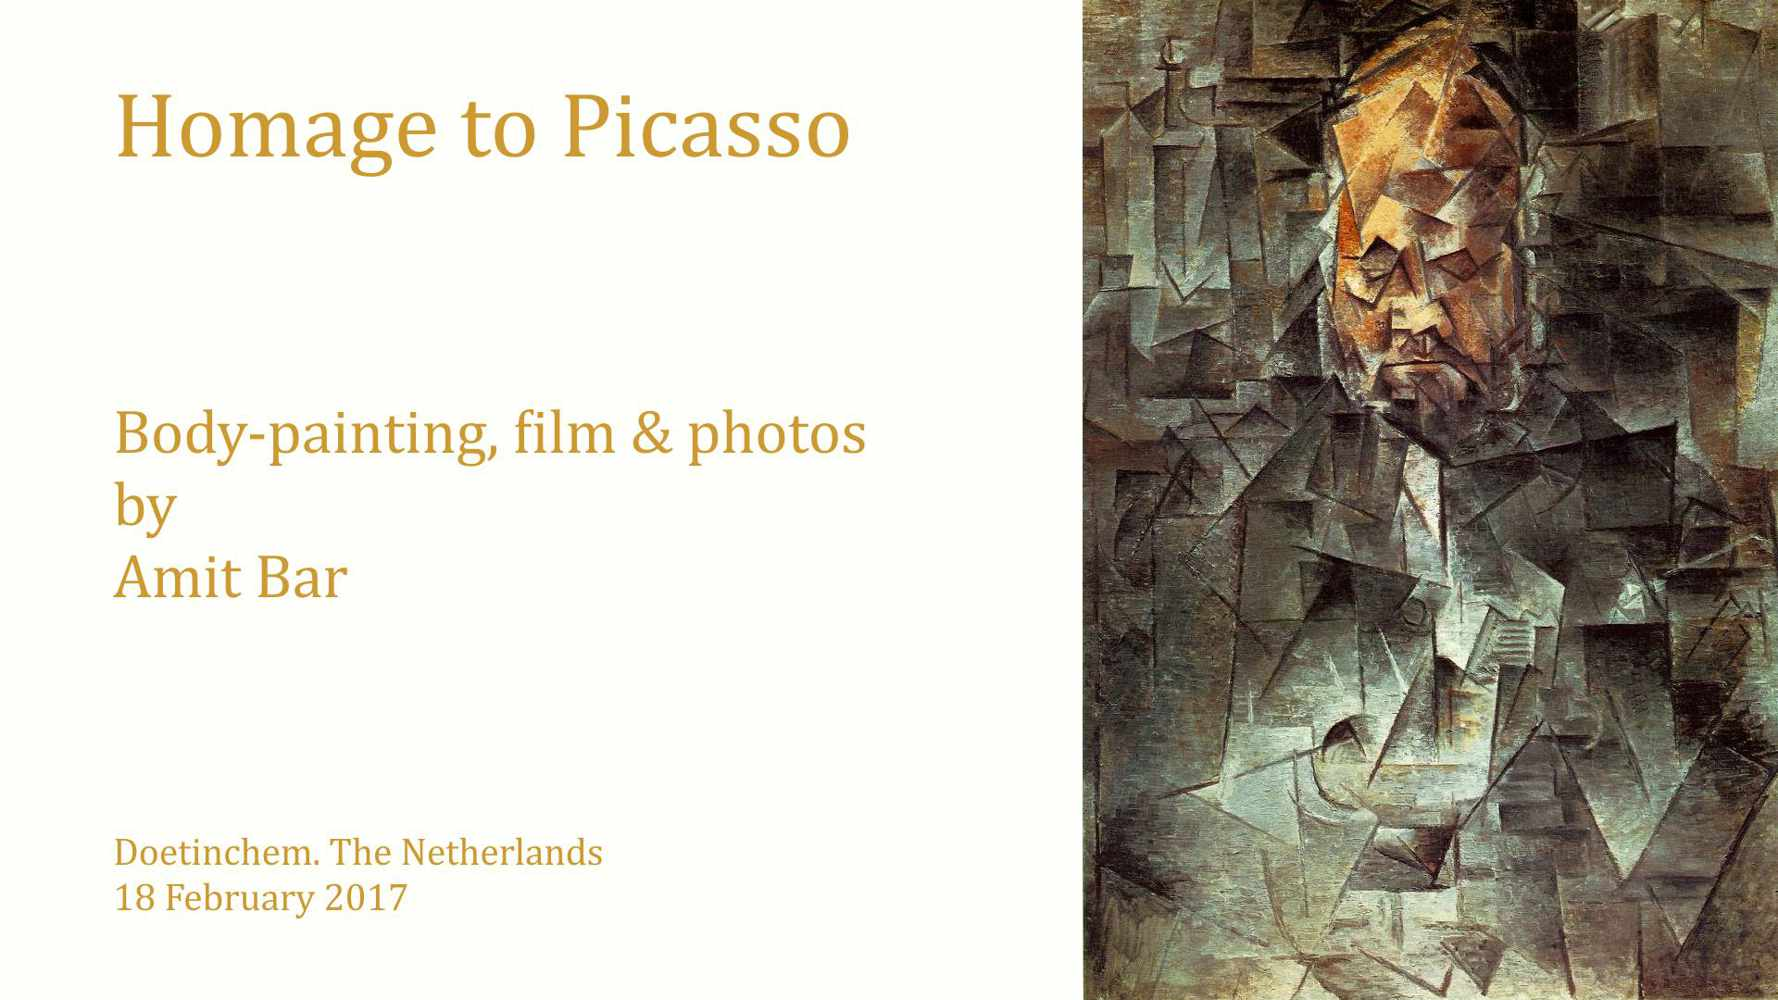 Homage to Picasso video: The cubistic portrait of art-dealer Ambroise Vollard which is painted in 1910 by Picasso inspired me to create a homage to the artist.